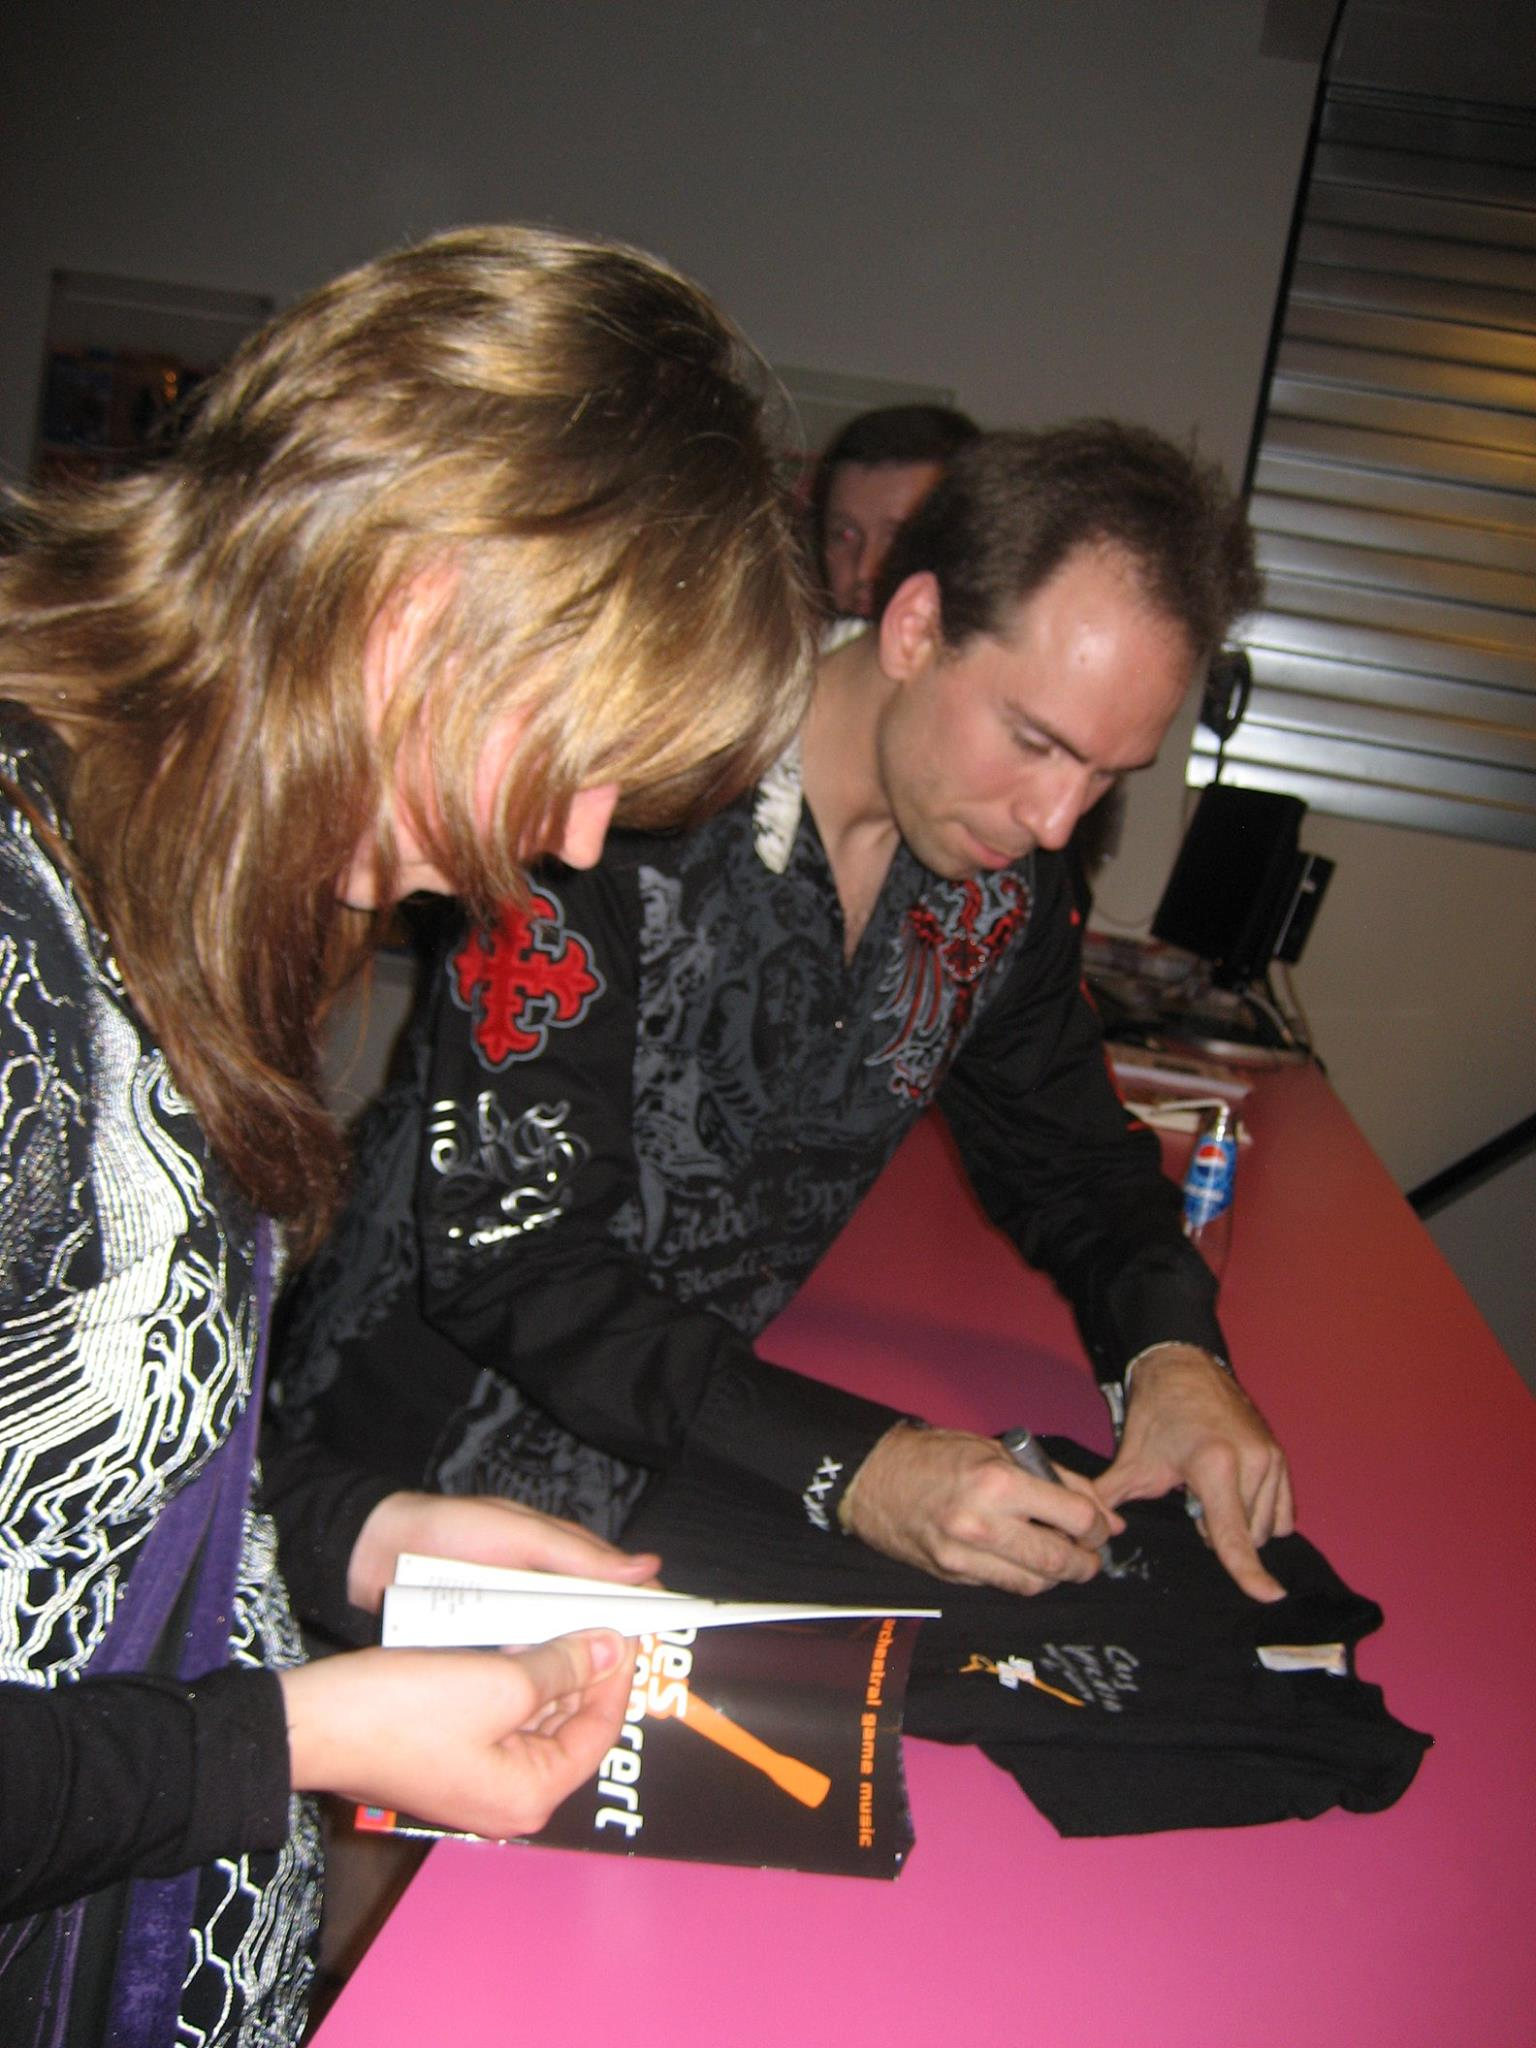 Signing session with the fans at Games in Concert